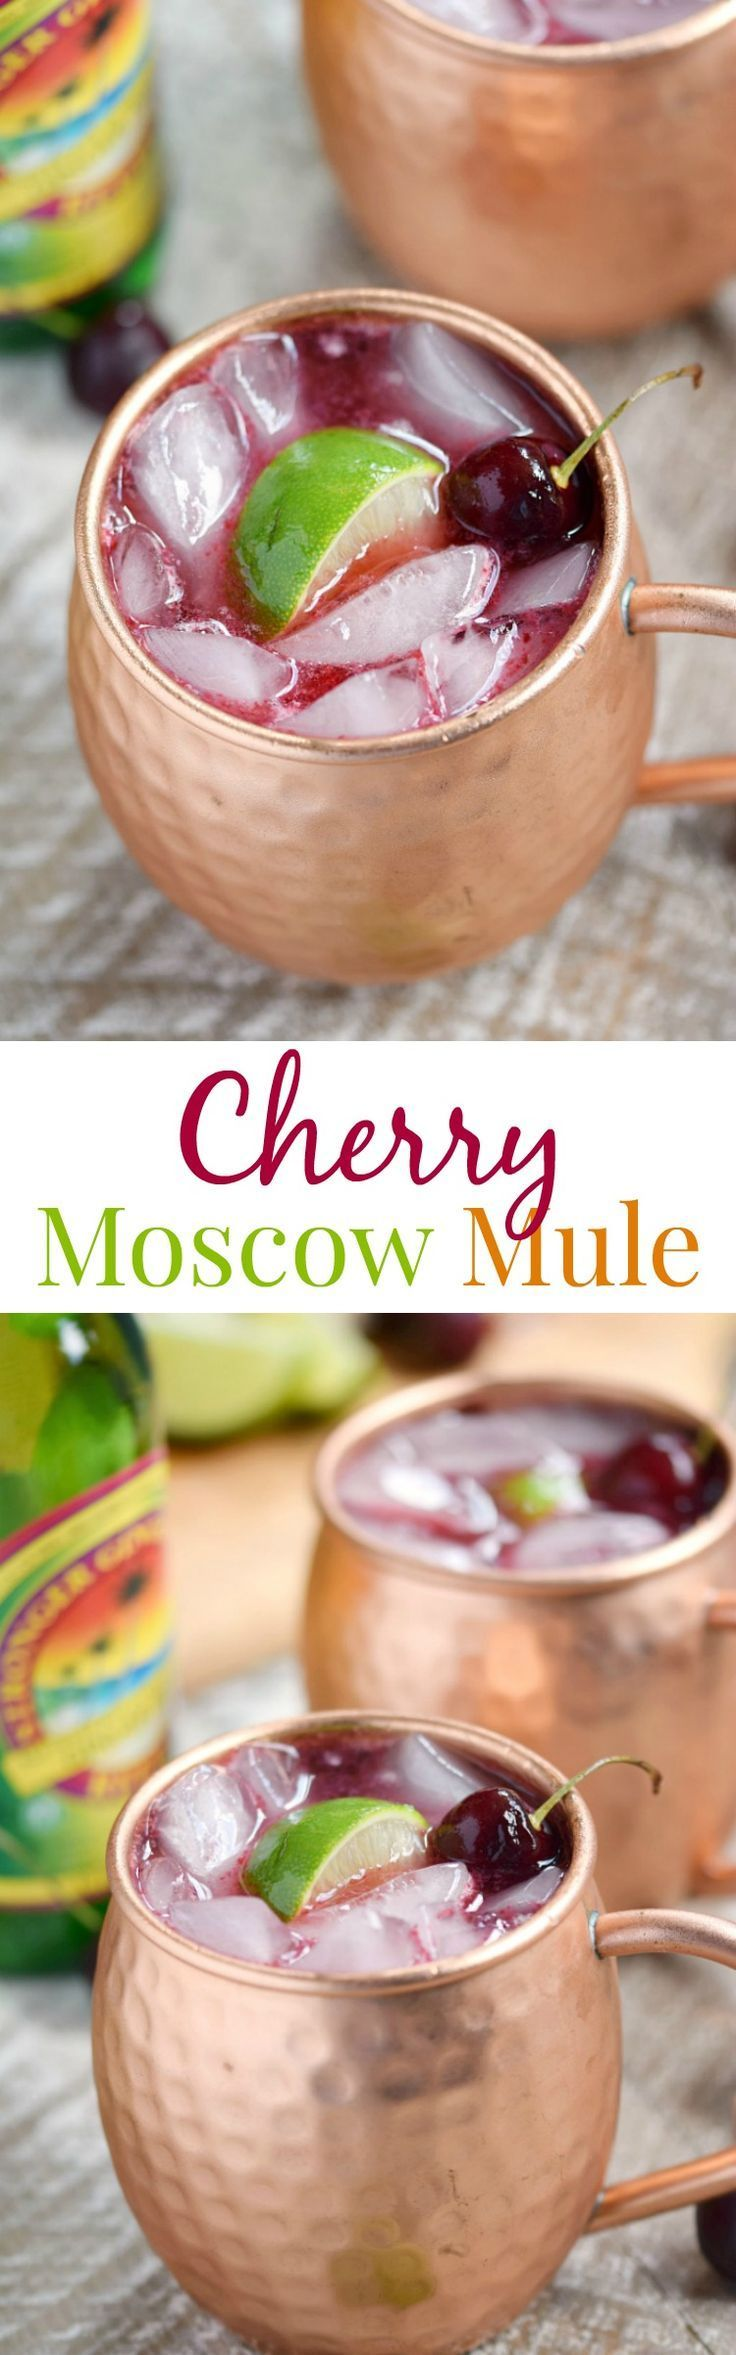 This Cherry Moscow Mule is a fruity, summer twist on a classic cocktail made with fresh cherries, vodka, ginger beer, liqueur and lime | cookingwithcurls.com